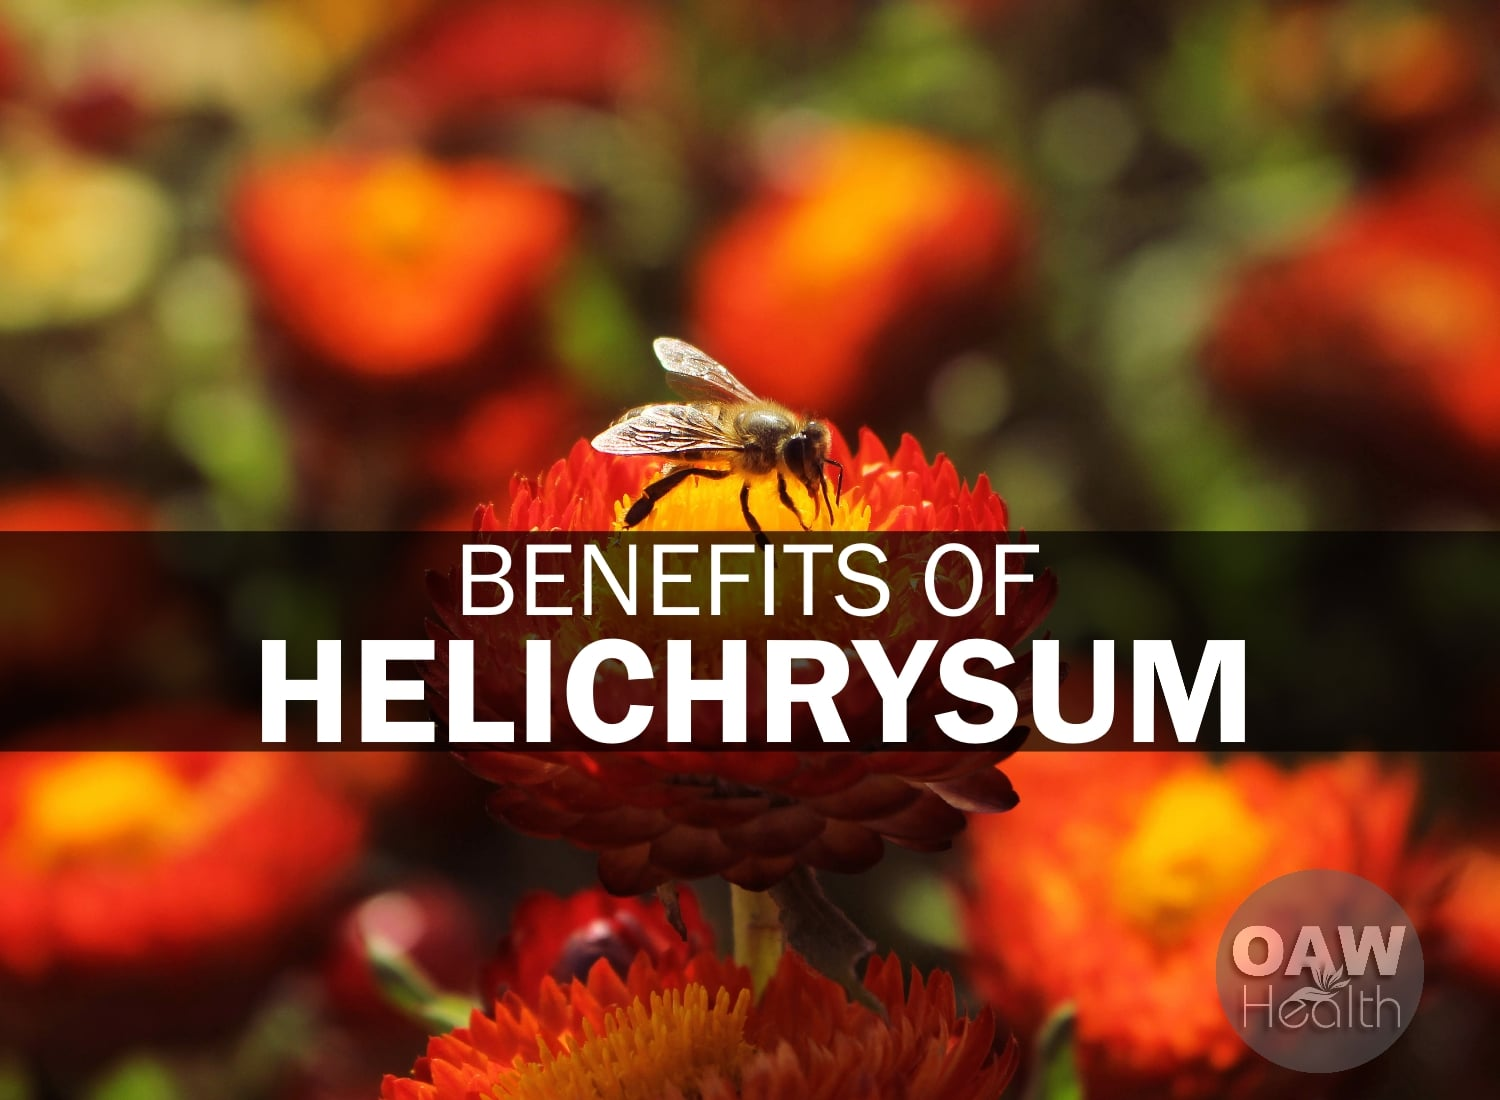 22 Benefits of Helichrysum